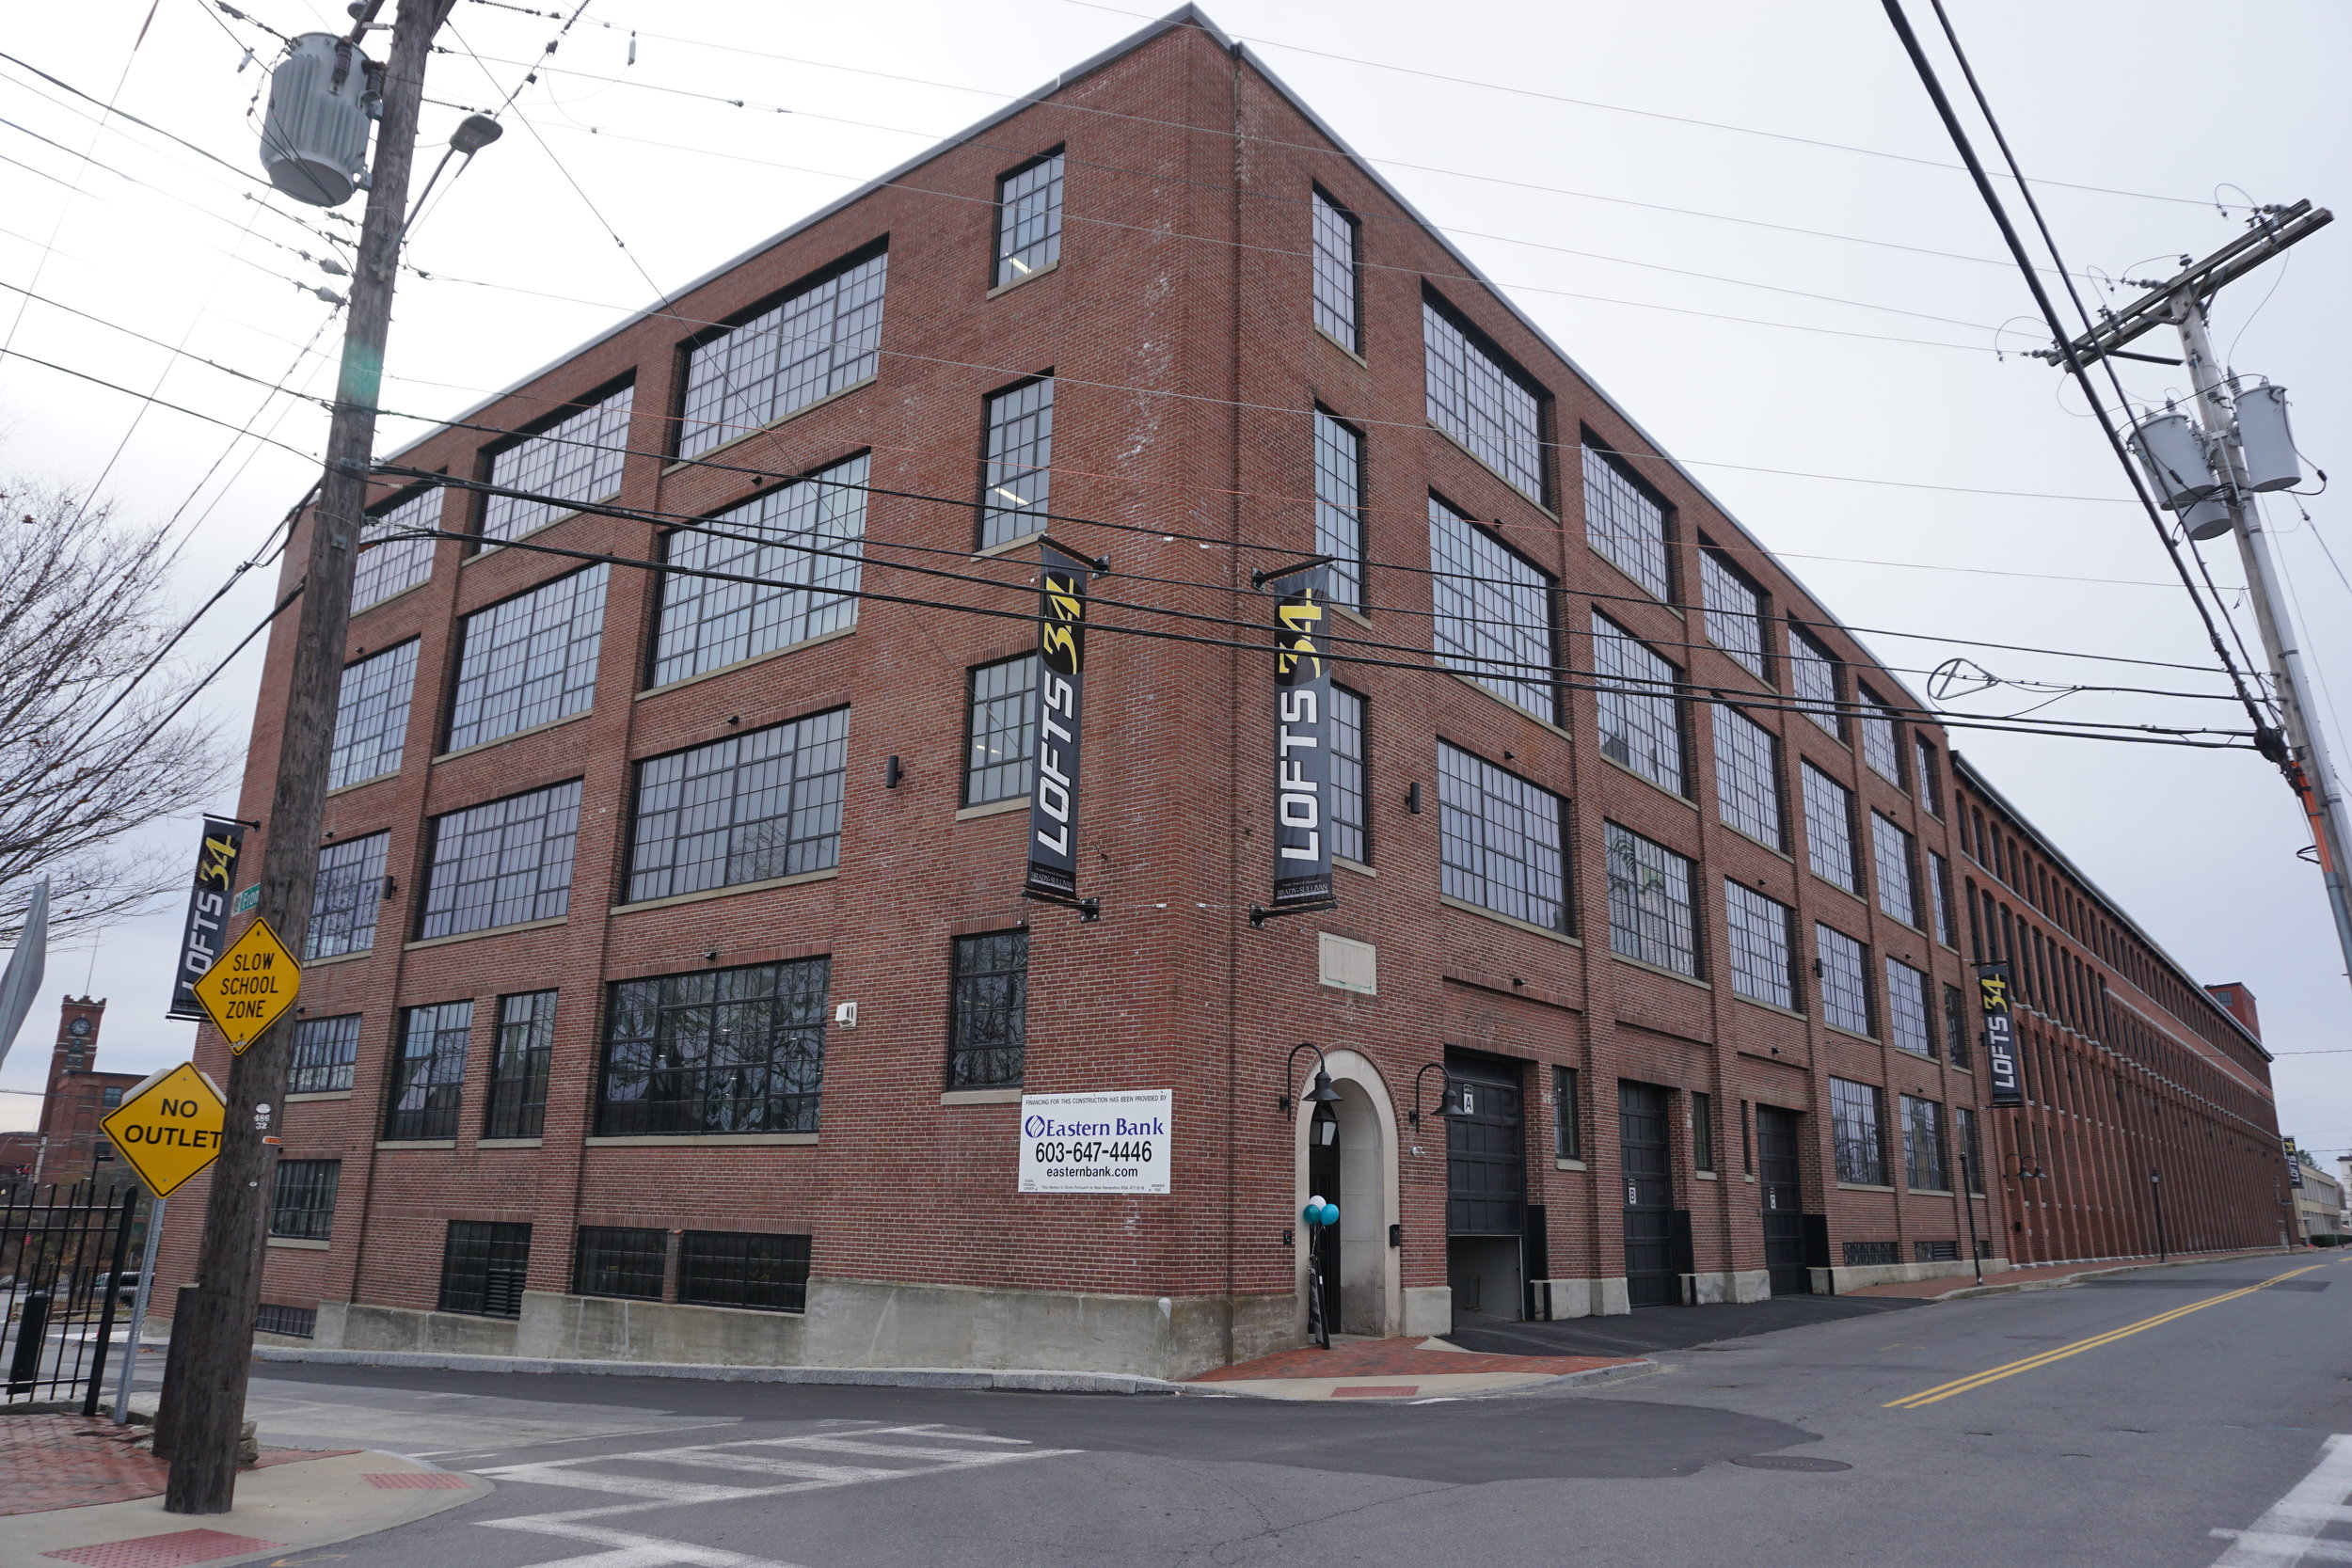 """The historic building known as the """"Card Shop"""" was part of a sprawling industrial complex in Nashua owned by the The Nashua Gummed and Coated Paper Company, whose construction began in 1889. Brady Sullivan purchased the vacant and neglected building in 2015, and since then has transformed the 300,000 sq.ft. building into a trendy home for 200 apartments. (Photo courtesy of Brady Sullivan.)"""